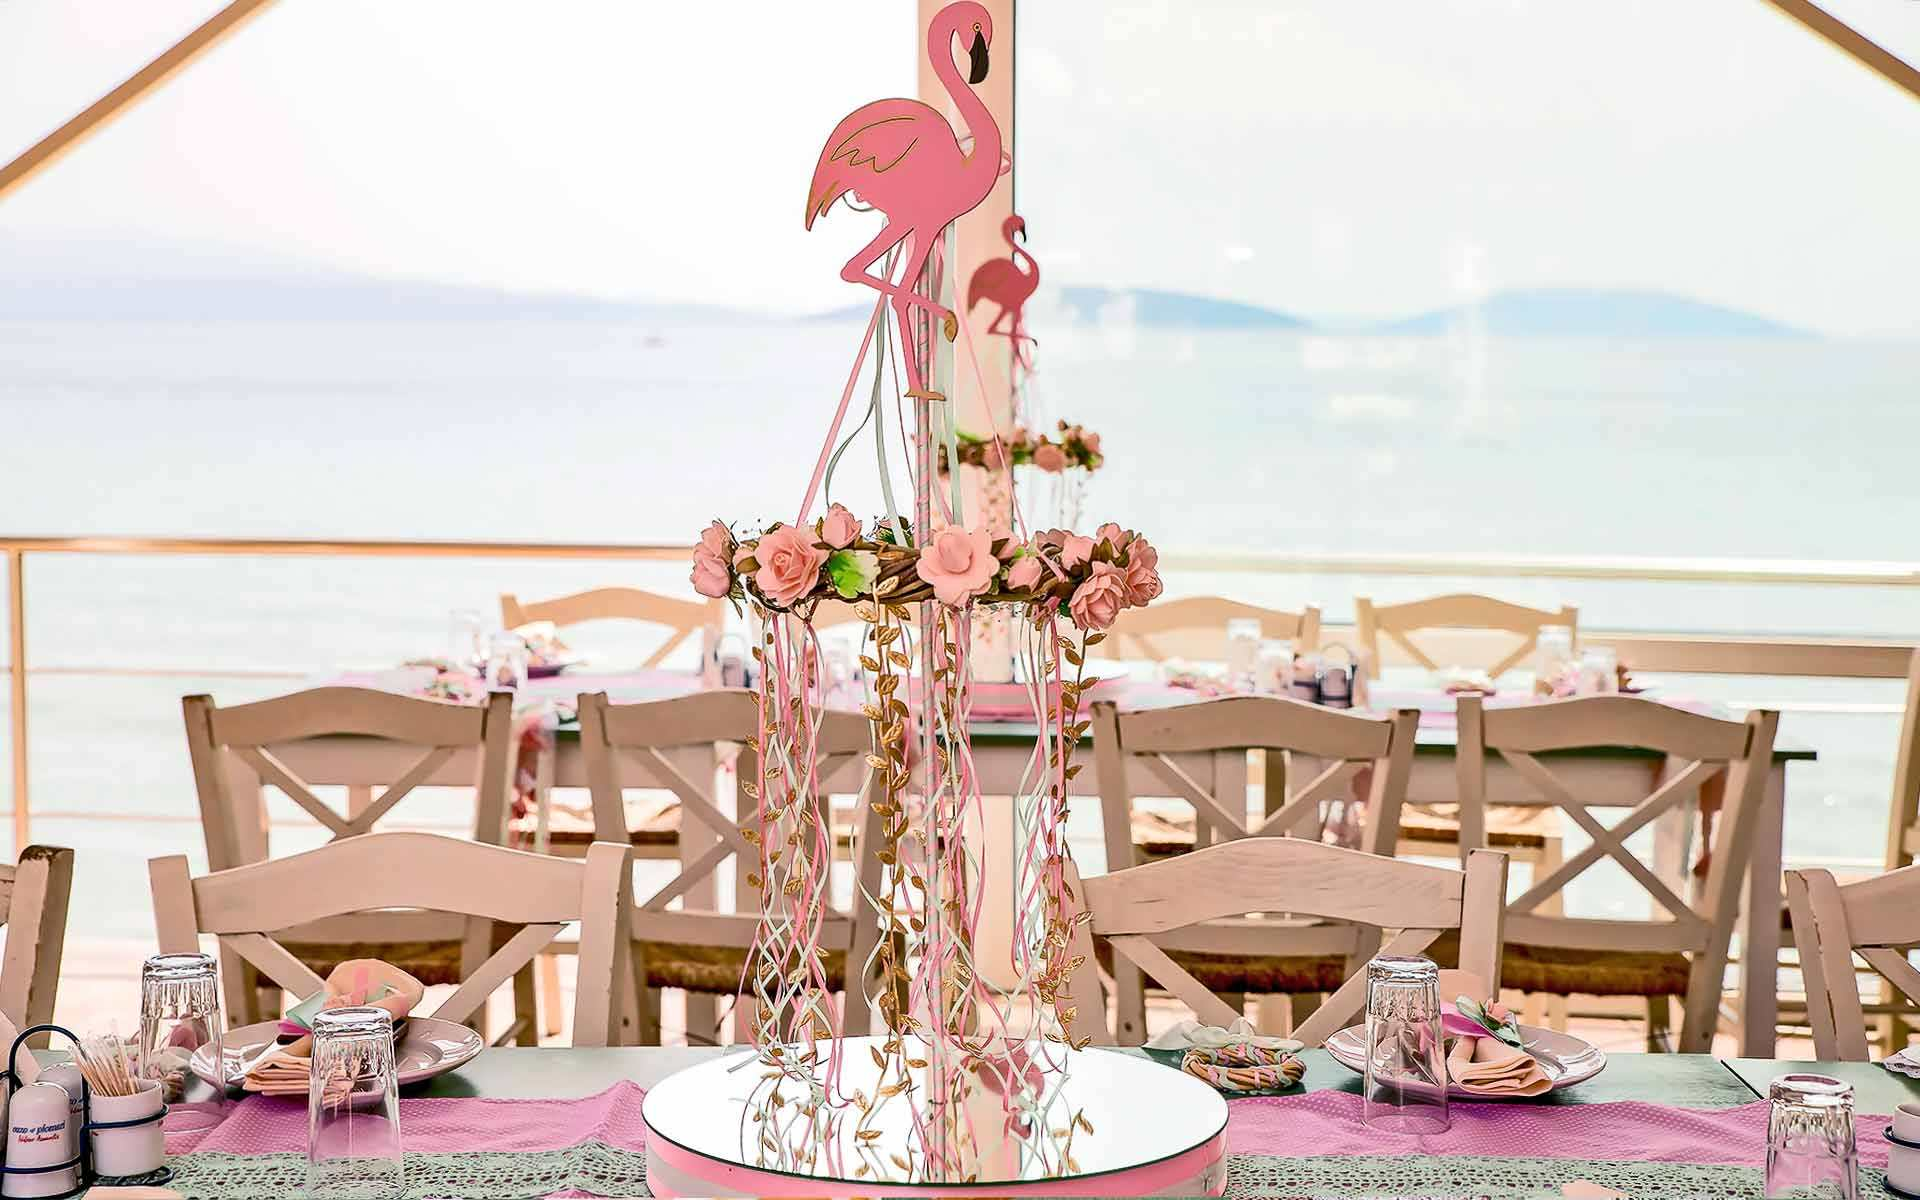 The-Carousel-Flamingo-Themed-Is-Great-For-Baby-Shower-For-Birthday-Party-And-For-Baptism